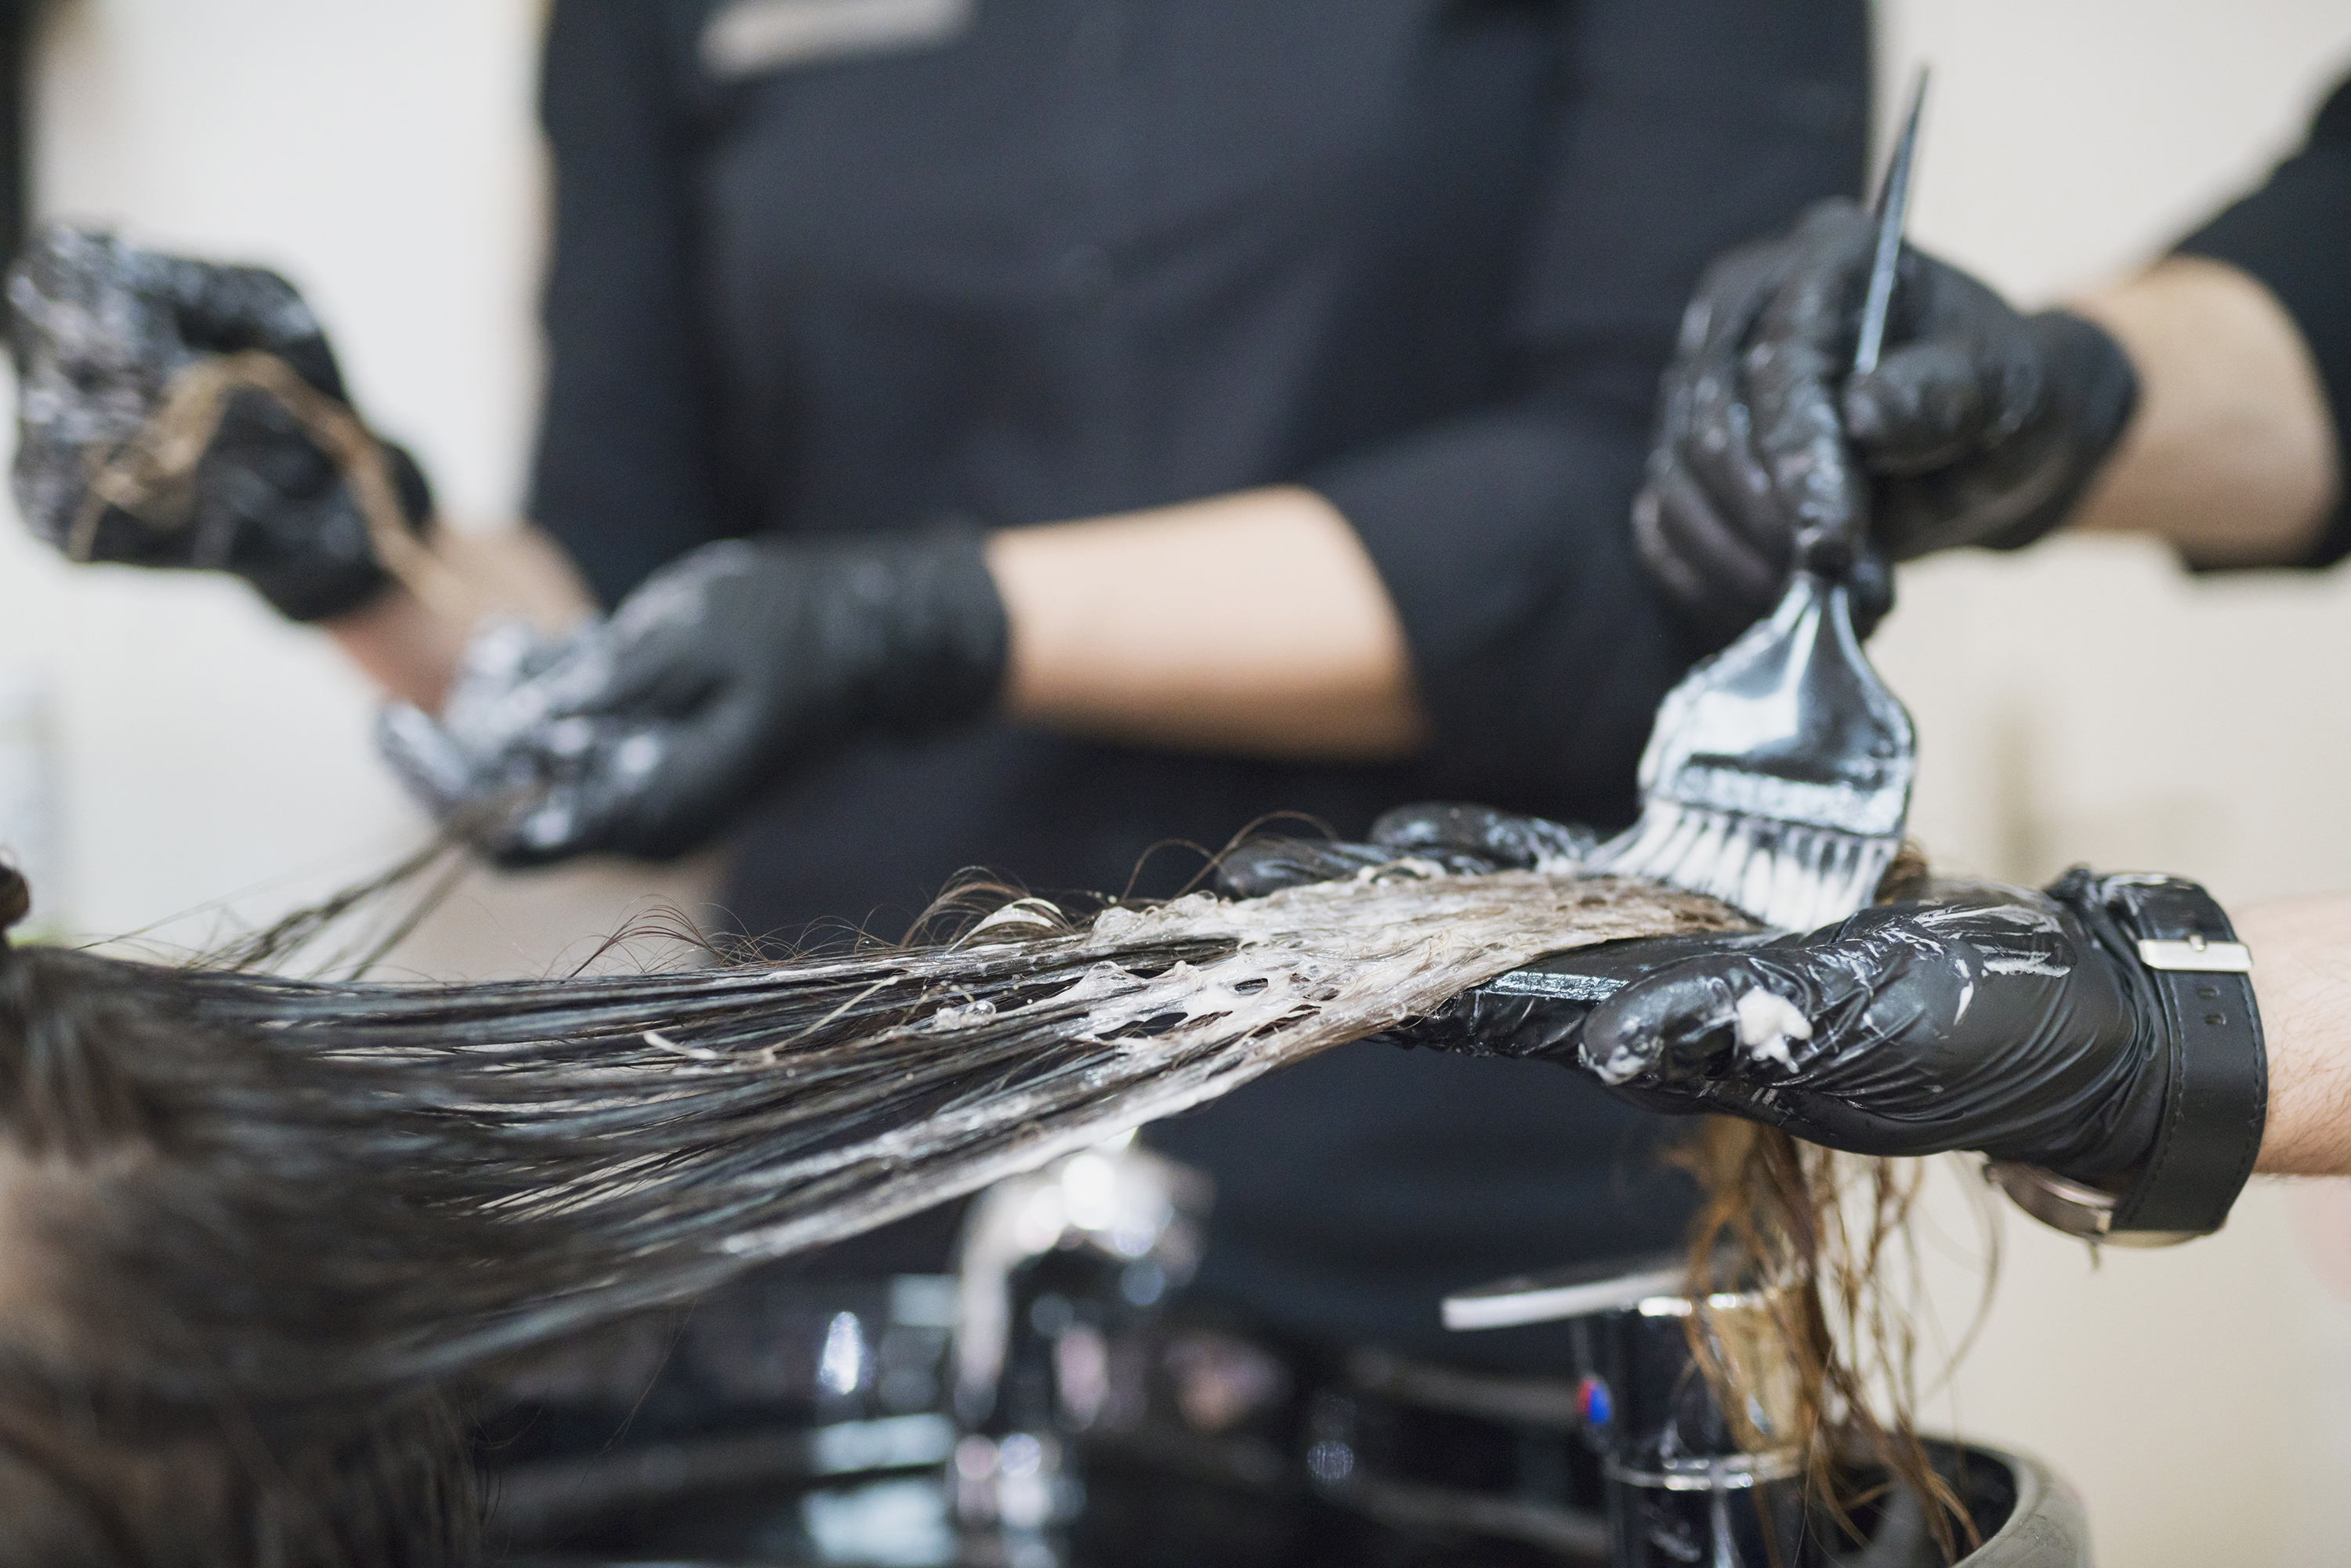 Hair Dyes And Straighteners Linked To Higher Cancer Risk, Especially For Black Women